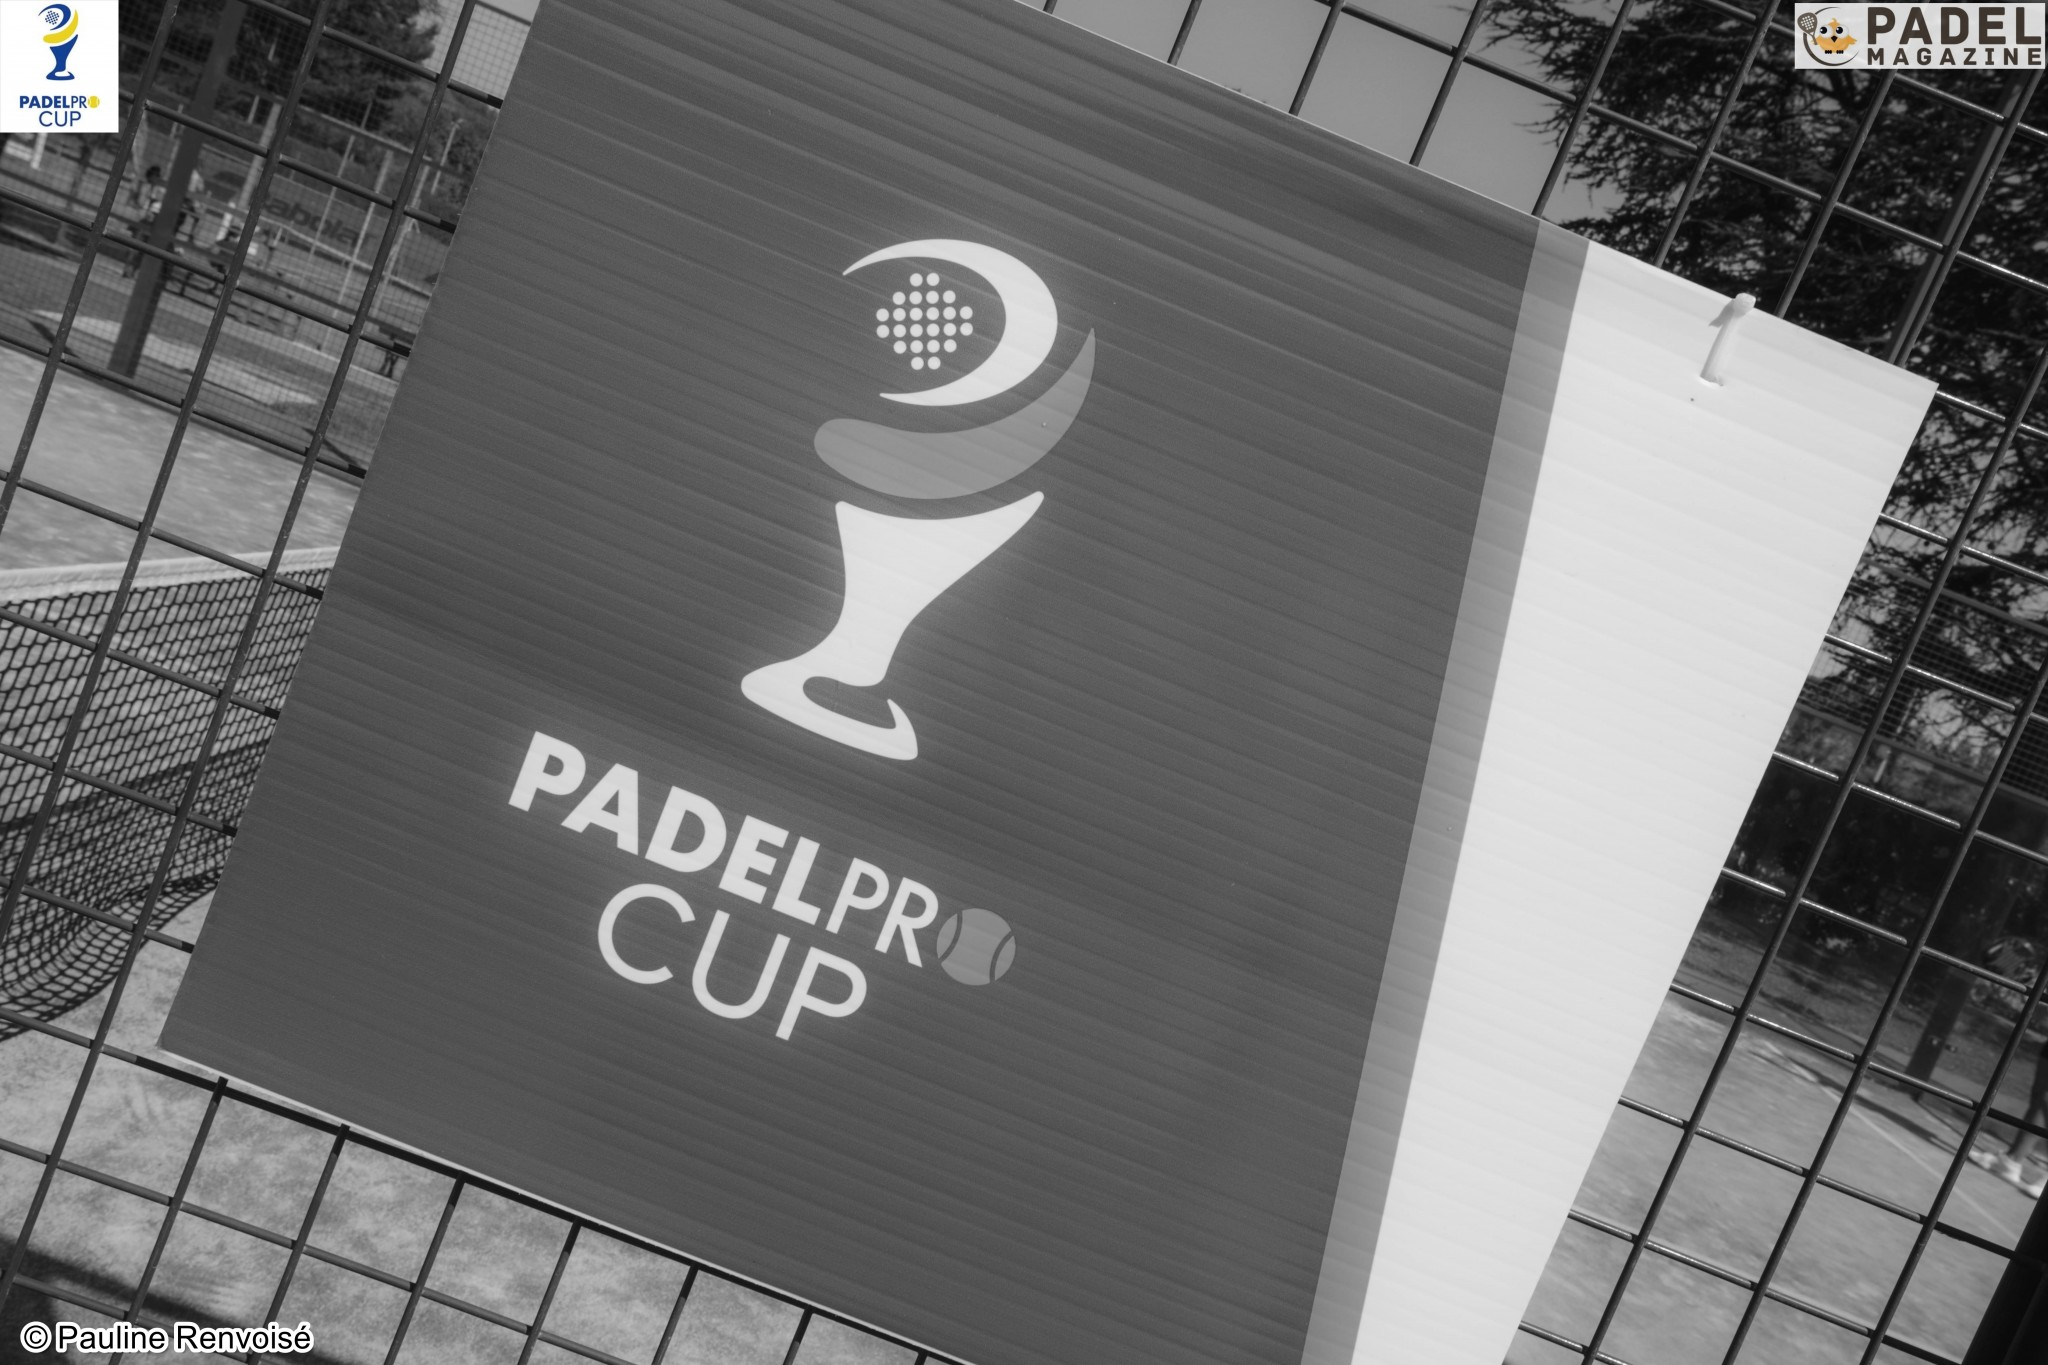 No Padelpro Cup in 2020